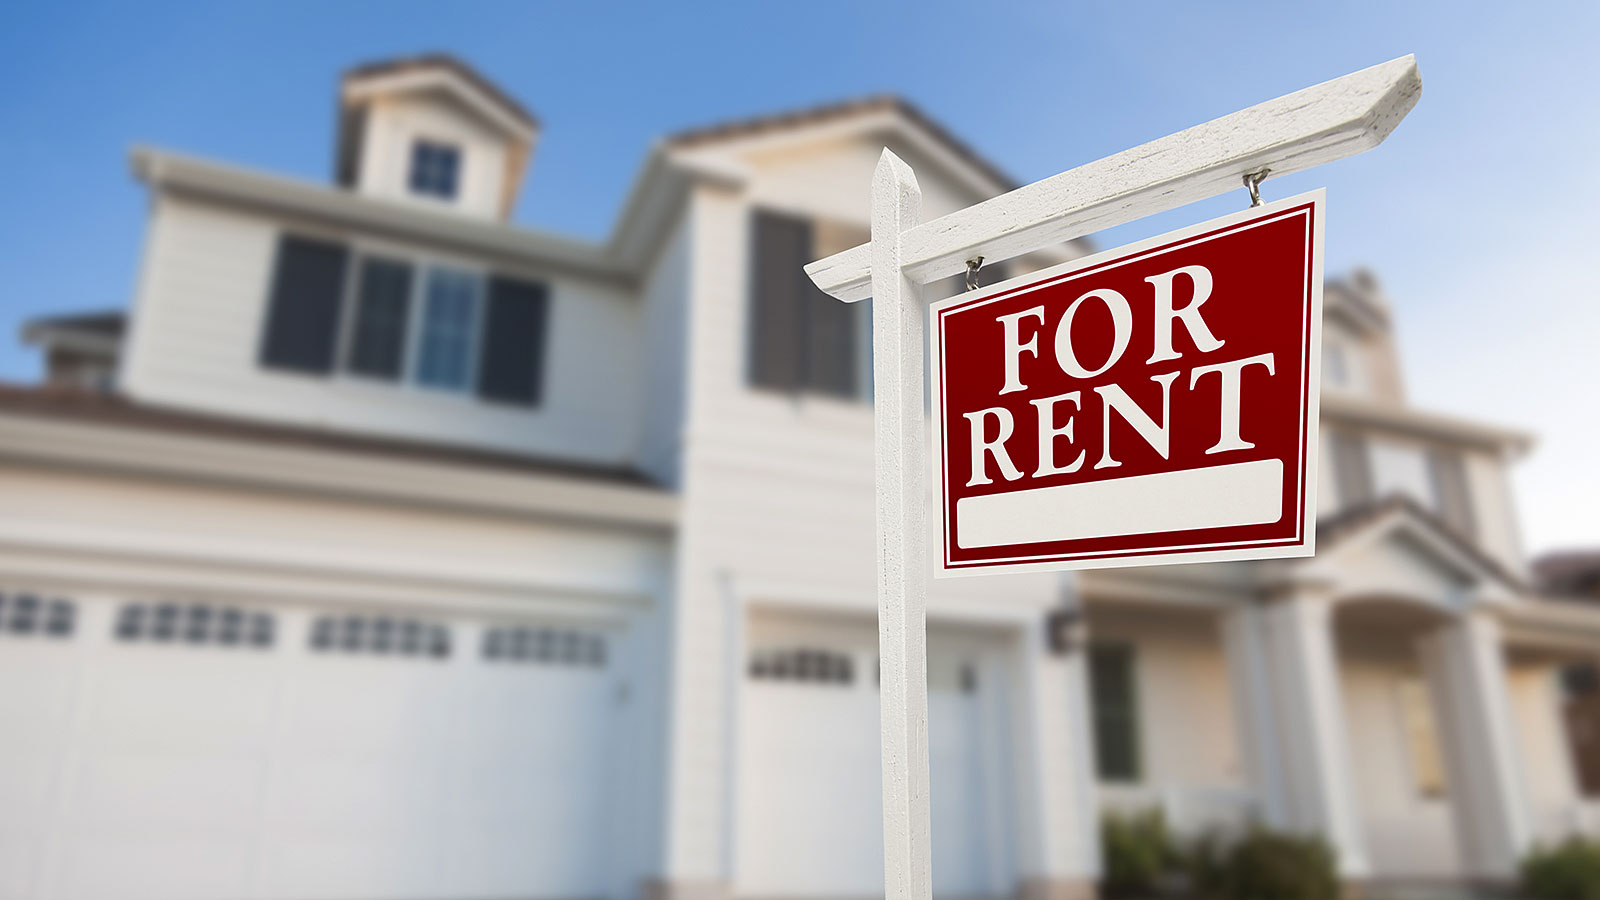 5 reasons to keep renting